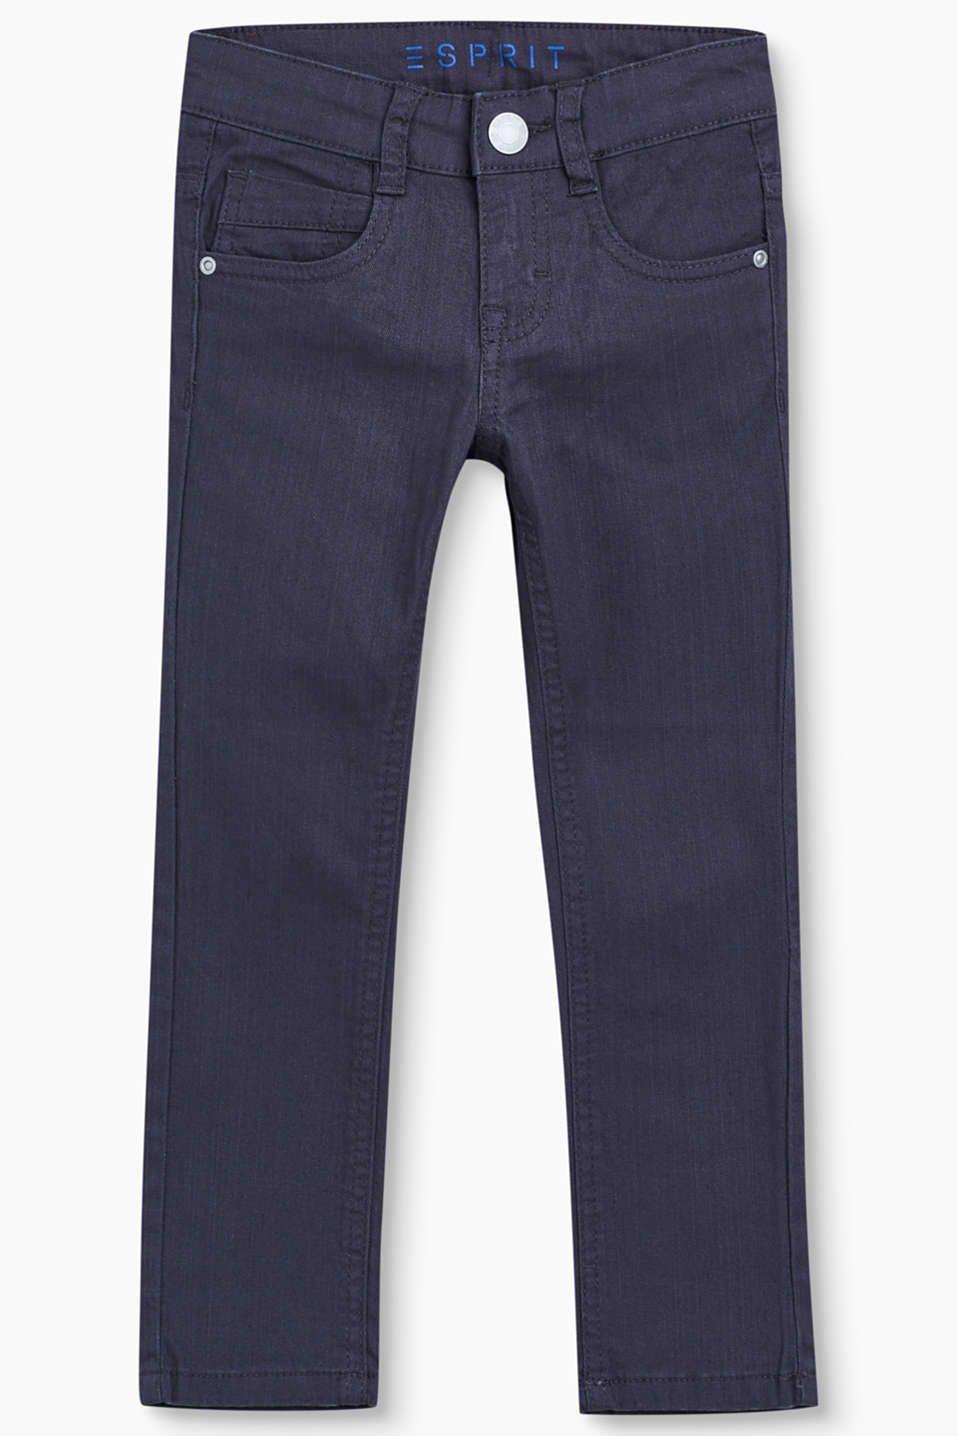 Esprit - Soepele 5-pocket-jeans met stretch